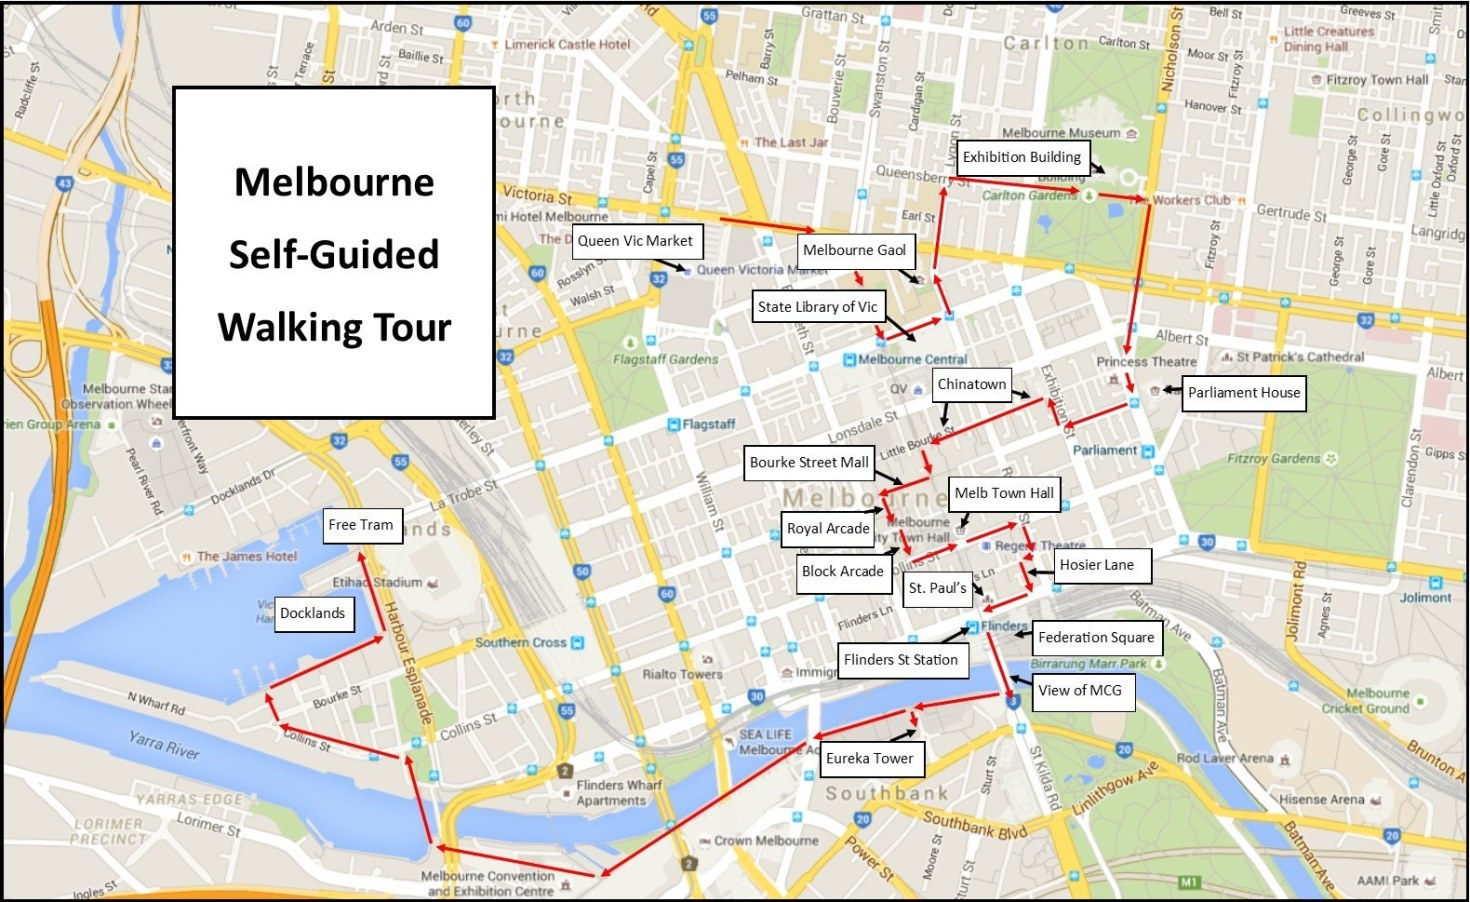 Self-guided walking tour of Melbourne Map